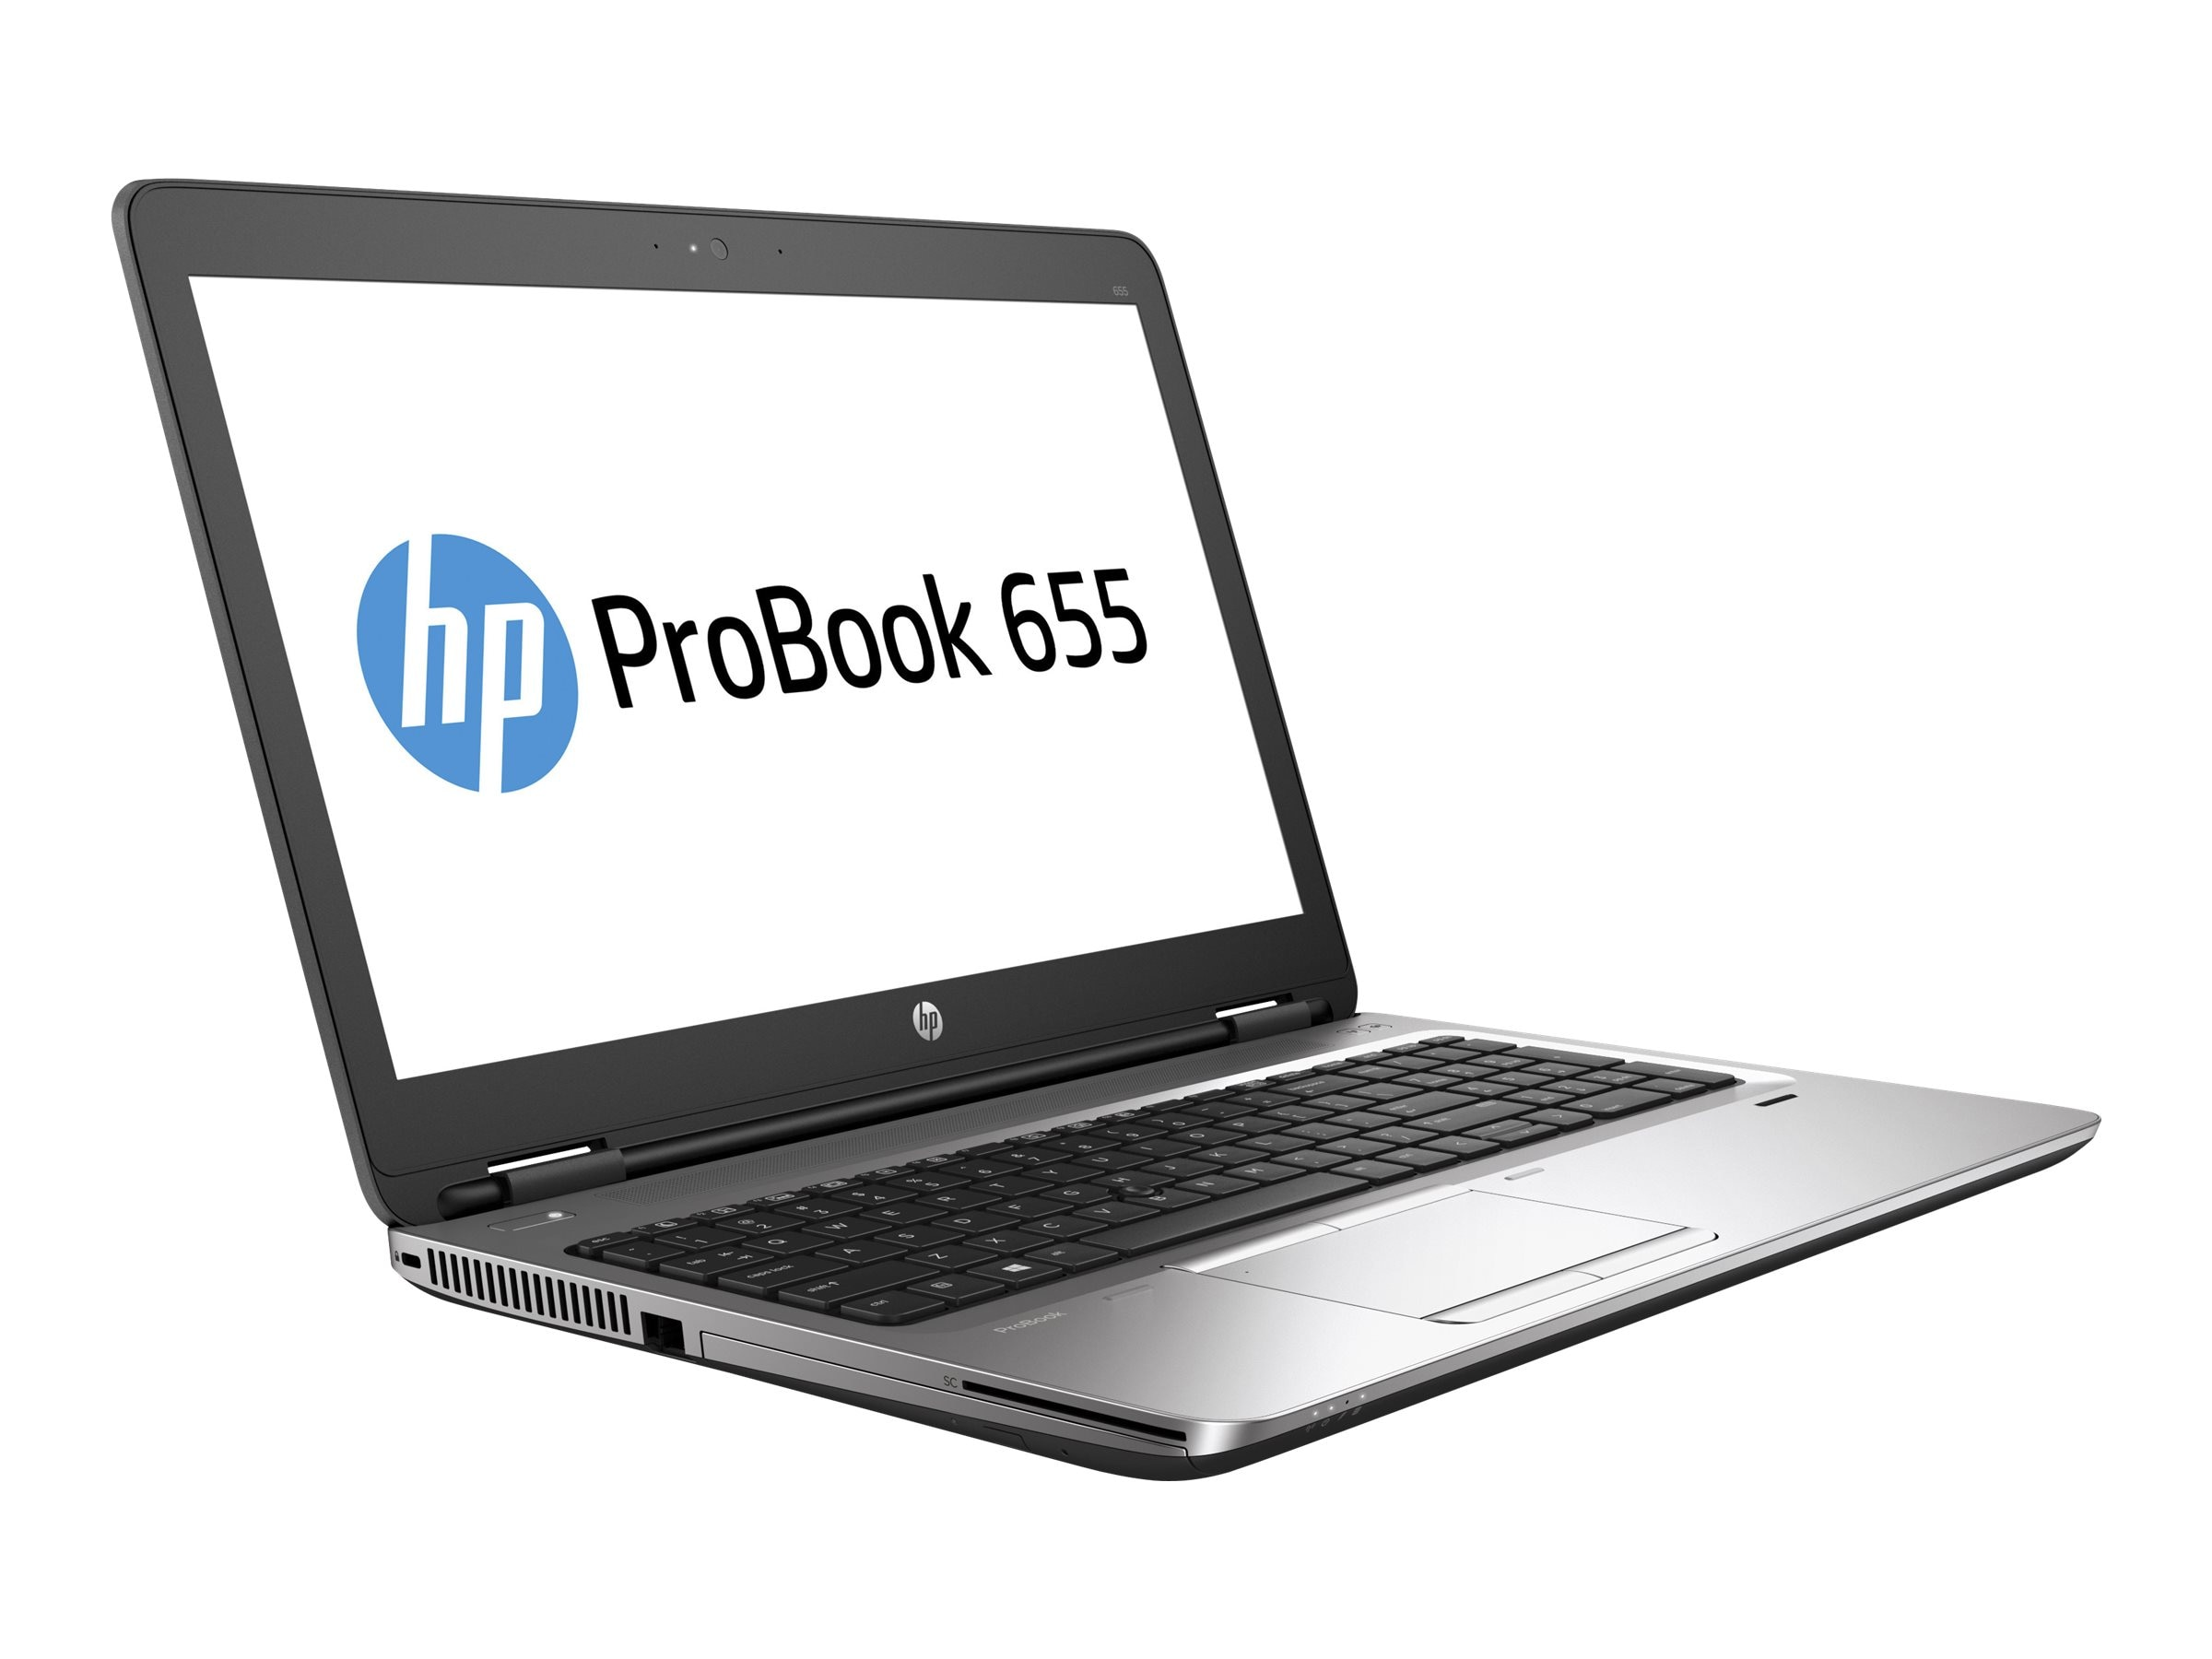 HP ProBook 655 G2 1.6GHz A6 15.6in display, X9V27UT#ABA